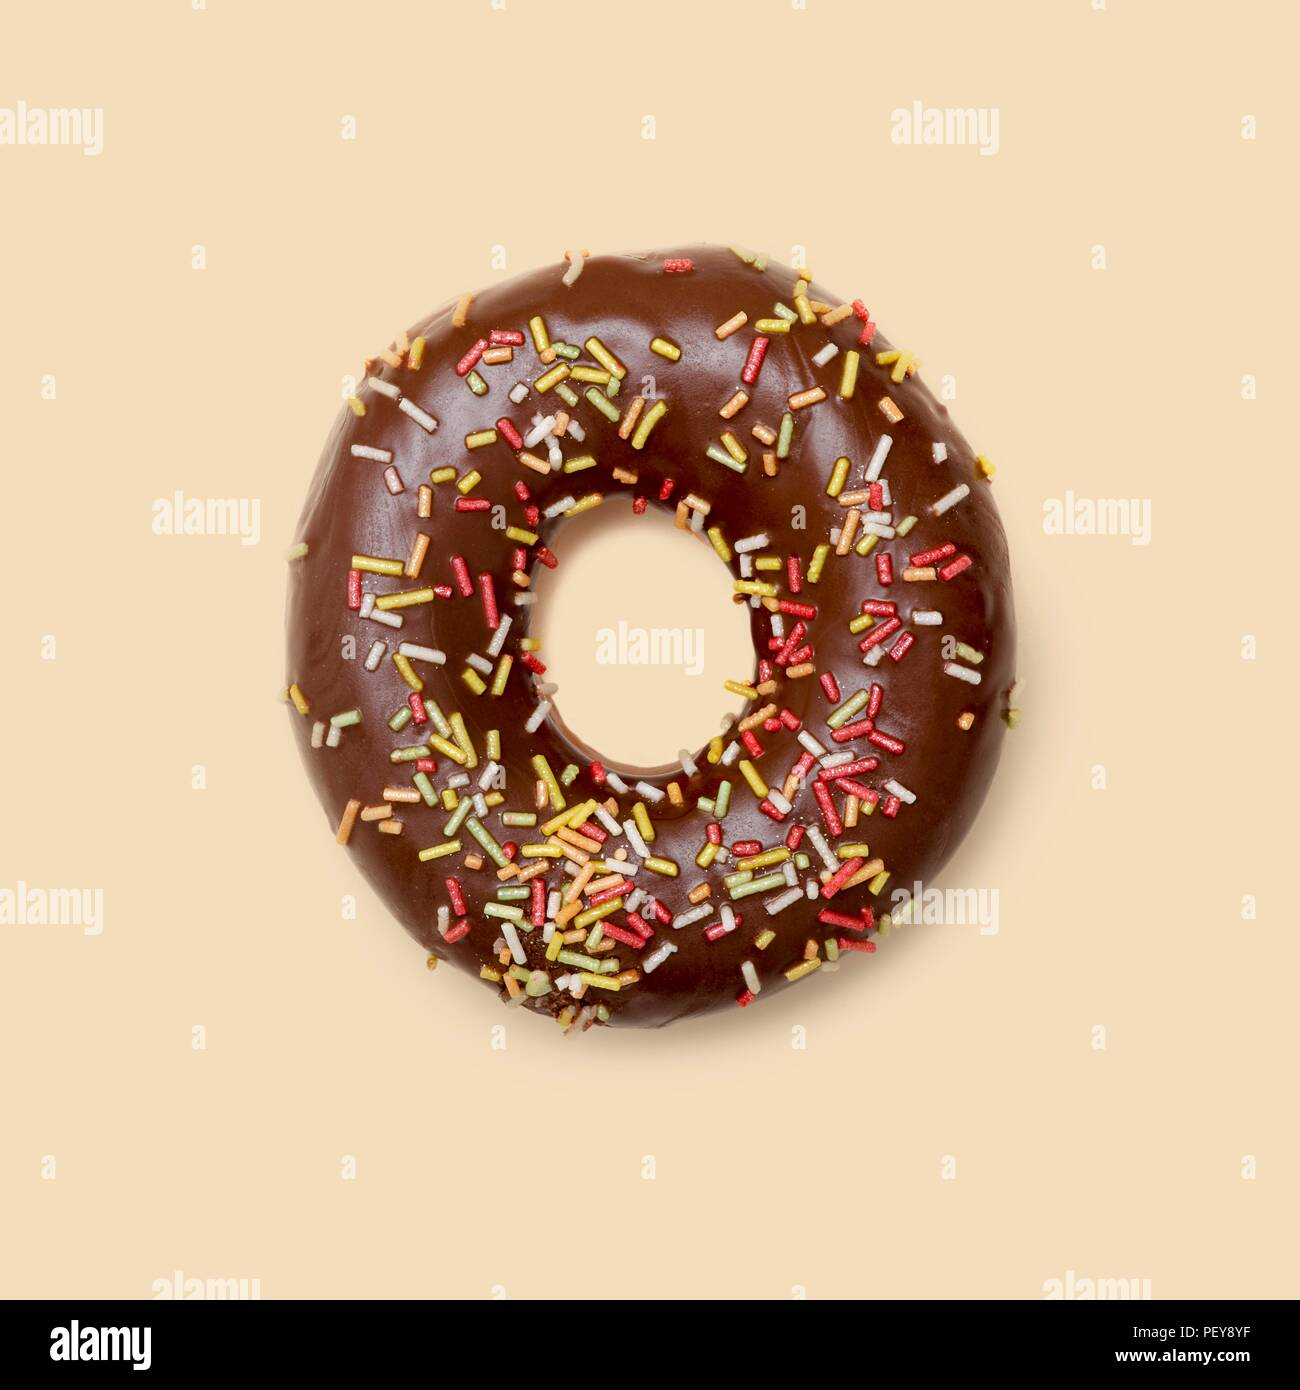 Chocolate doughnut with sugar strands, studio shot. - Stock Image